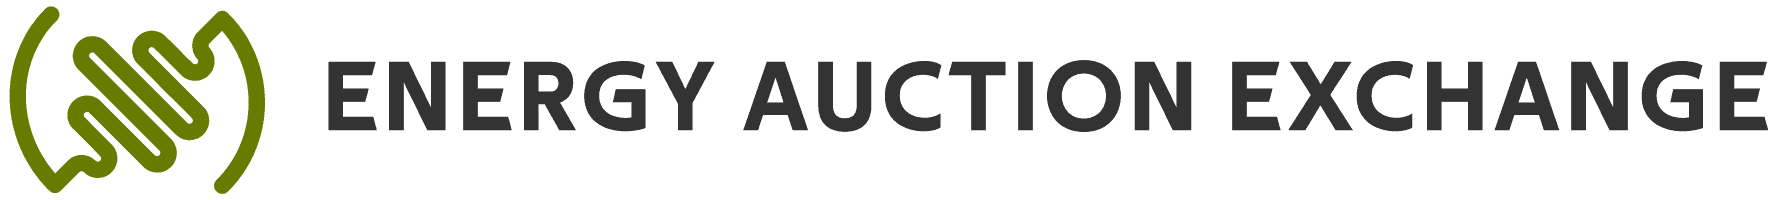 Energy Auction Exchange